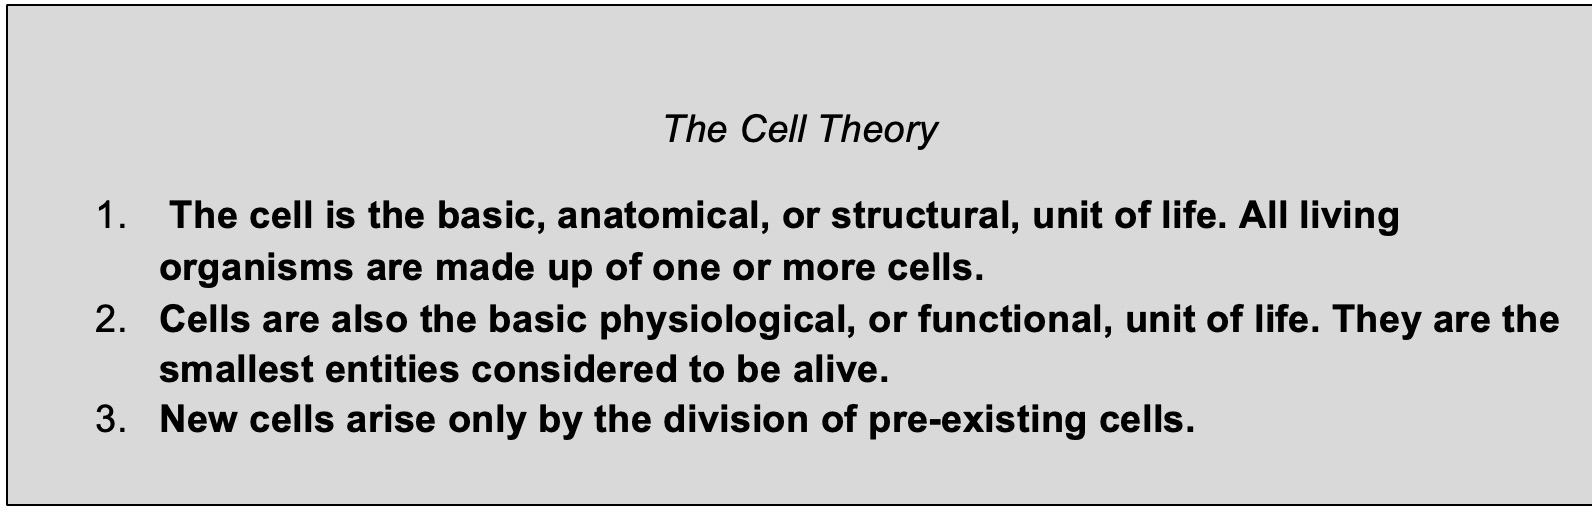 The cell theory 1. The cell is the basic, anatomical, or structural, unit of life. All living organisms are made up of one or more cells. 2. Cells are also the basic physiological, or functional unit of life. They are the smallest entities considered to be alive. 3. New cells arise only by division of pre-existing cells.